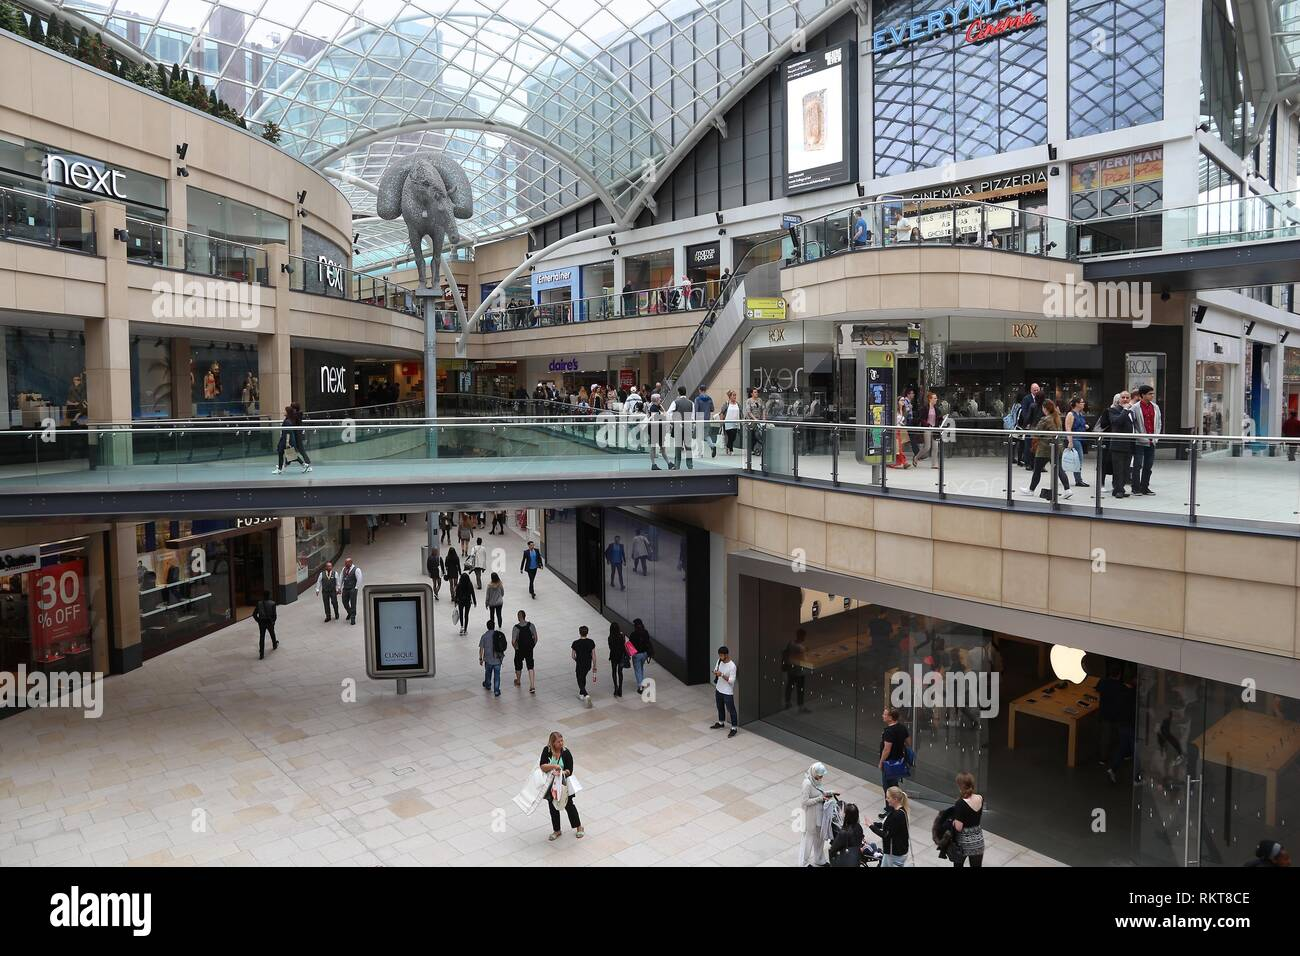 LEEDS, UK - JULY 12, 2016: People walk in Trinity Leeds shopping and leisure centre in Leeds, UK. The modern development was designed by Chapman Taylo - Stock Image